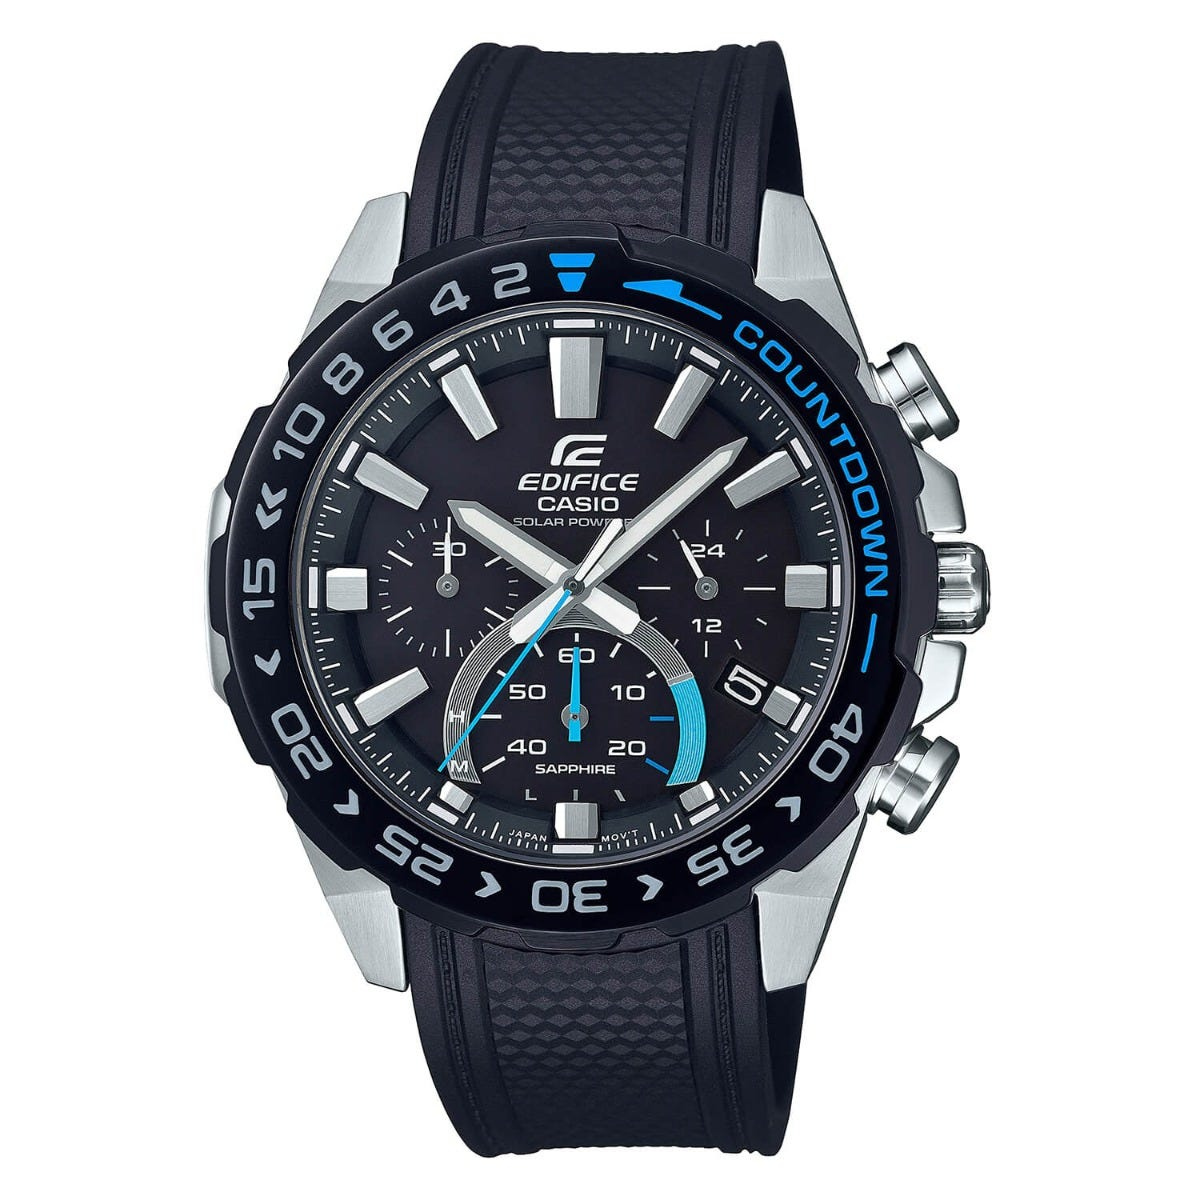 Casio Edifice Black Chronograph Dial Rubber Strap Mens Watch